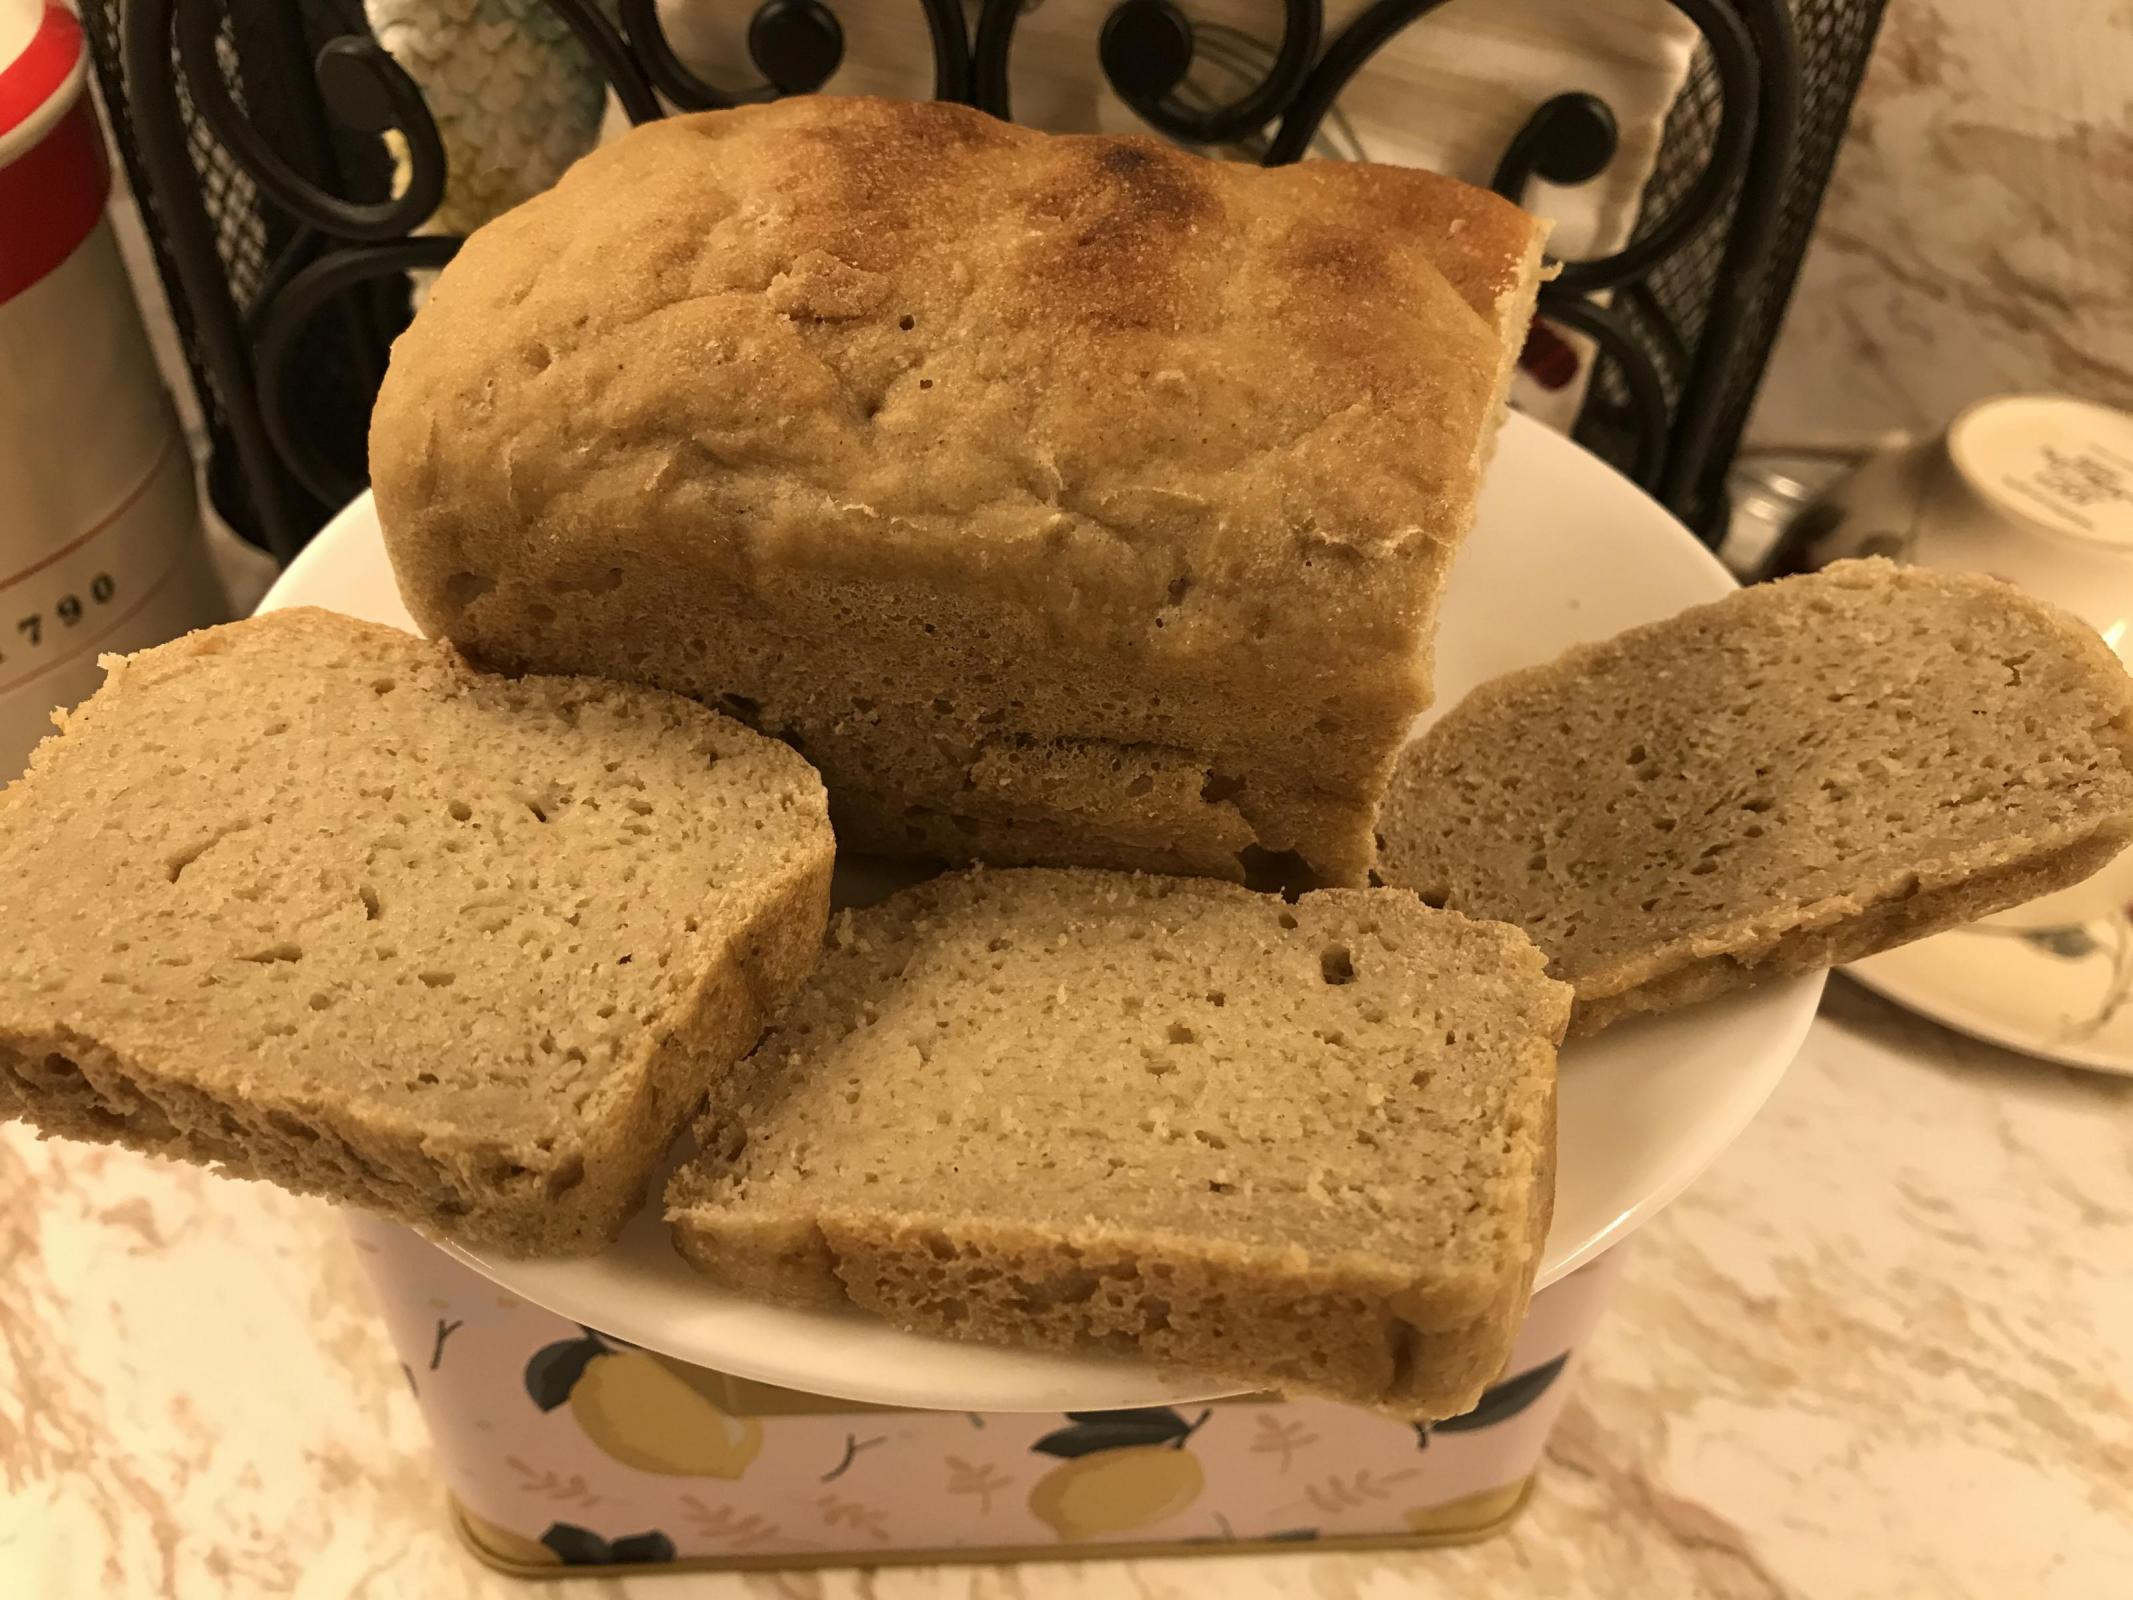 Bread loaf with three slices on plate.